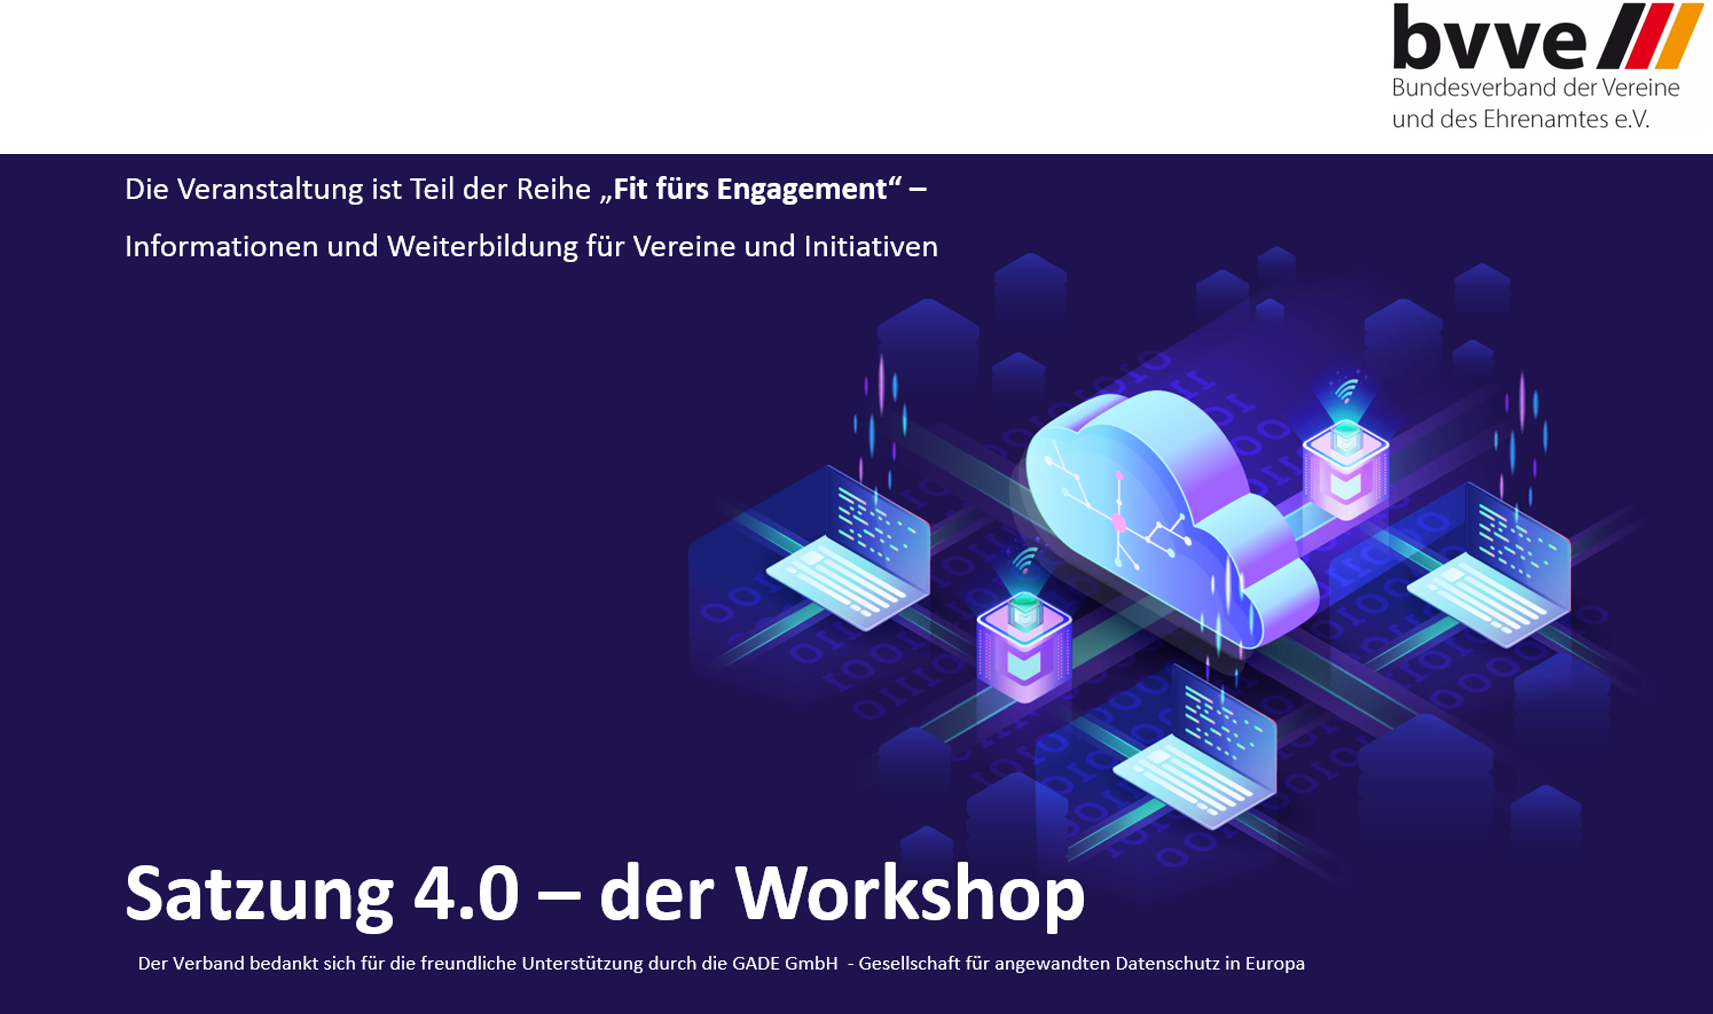 BVVE Workshop Satzung 4.0